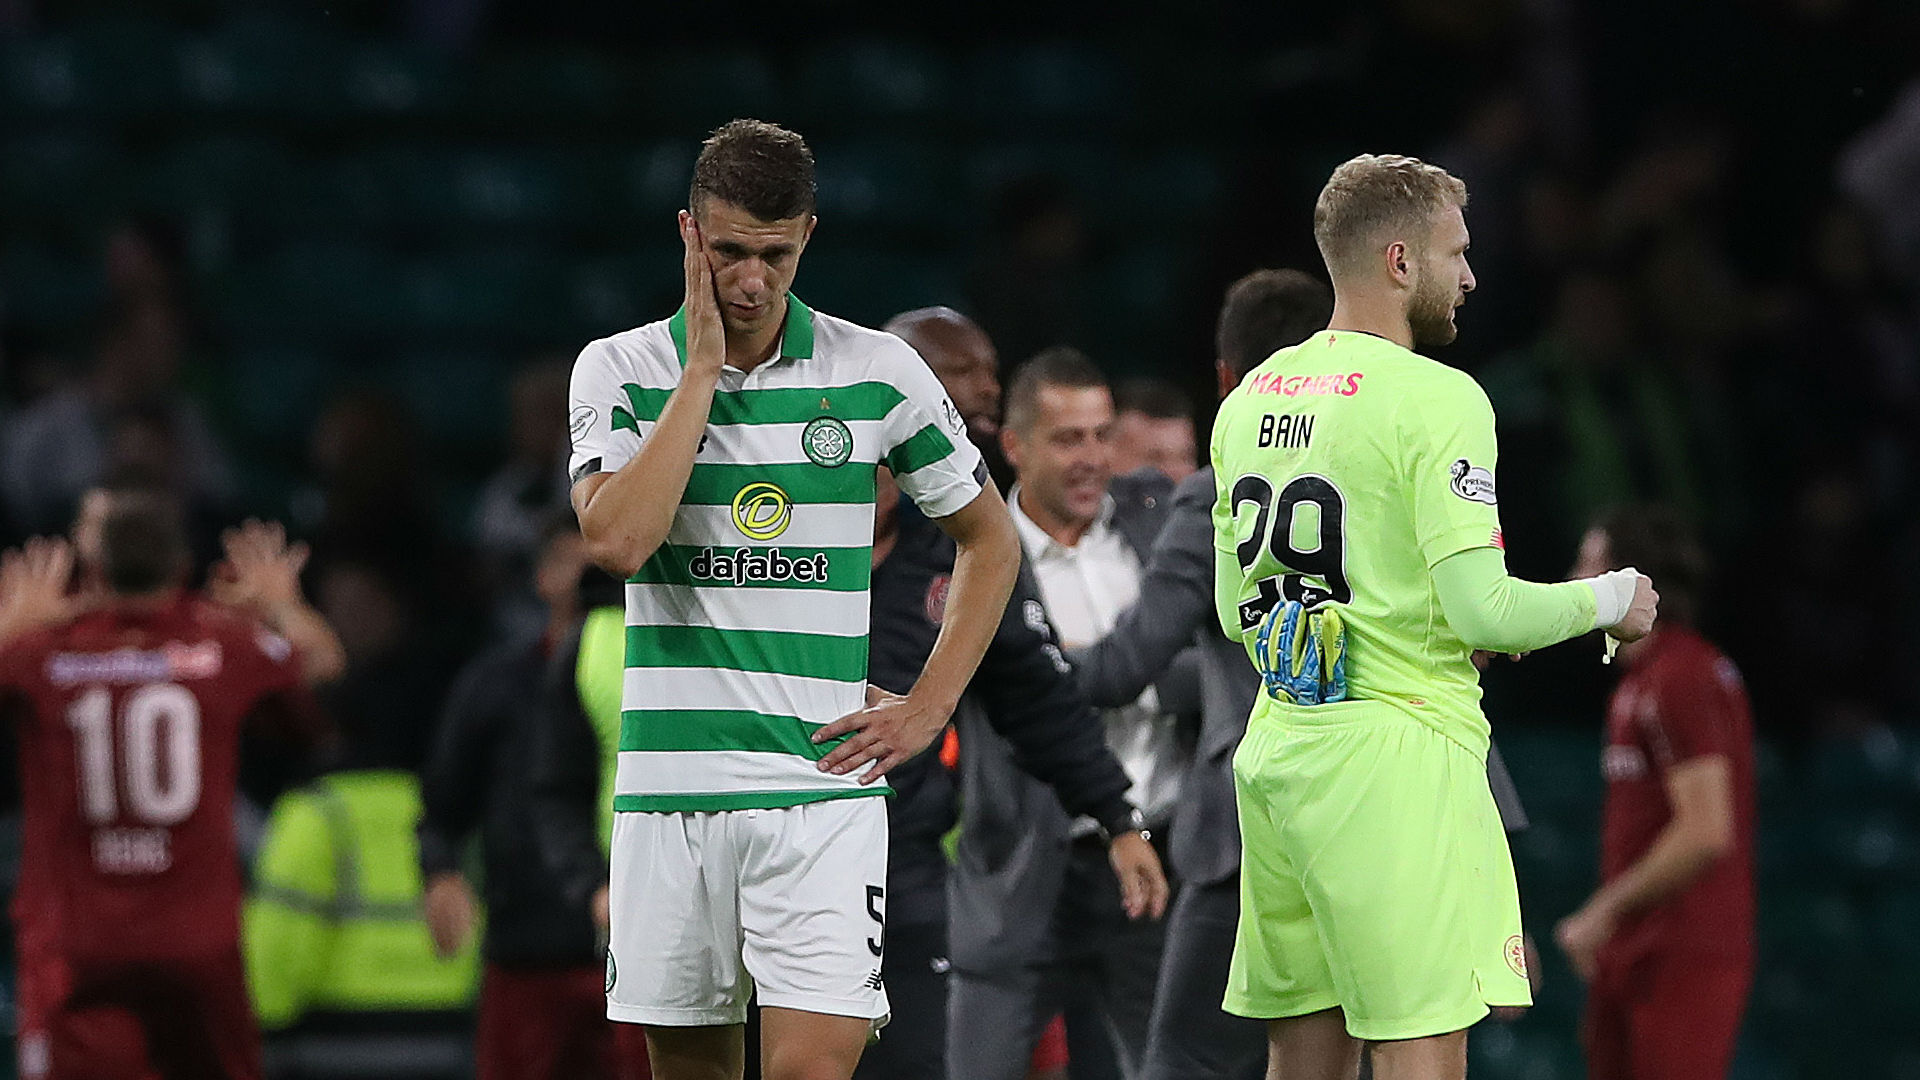 Celtic vs AIK Betting Tips: Latest odds, team news, preview and predictions